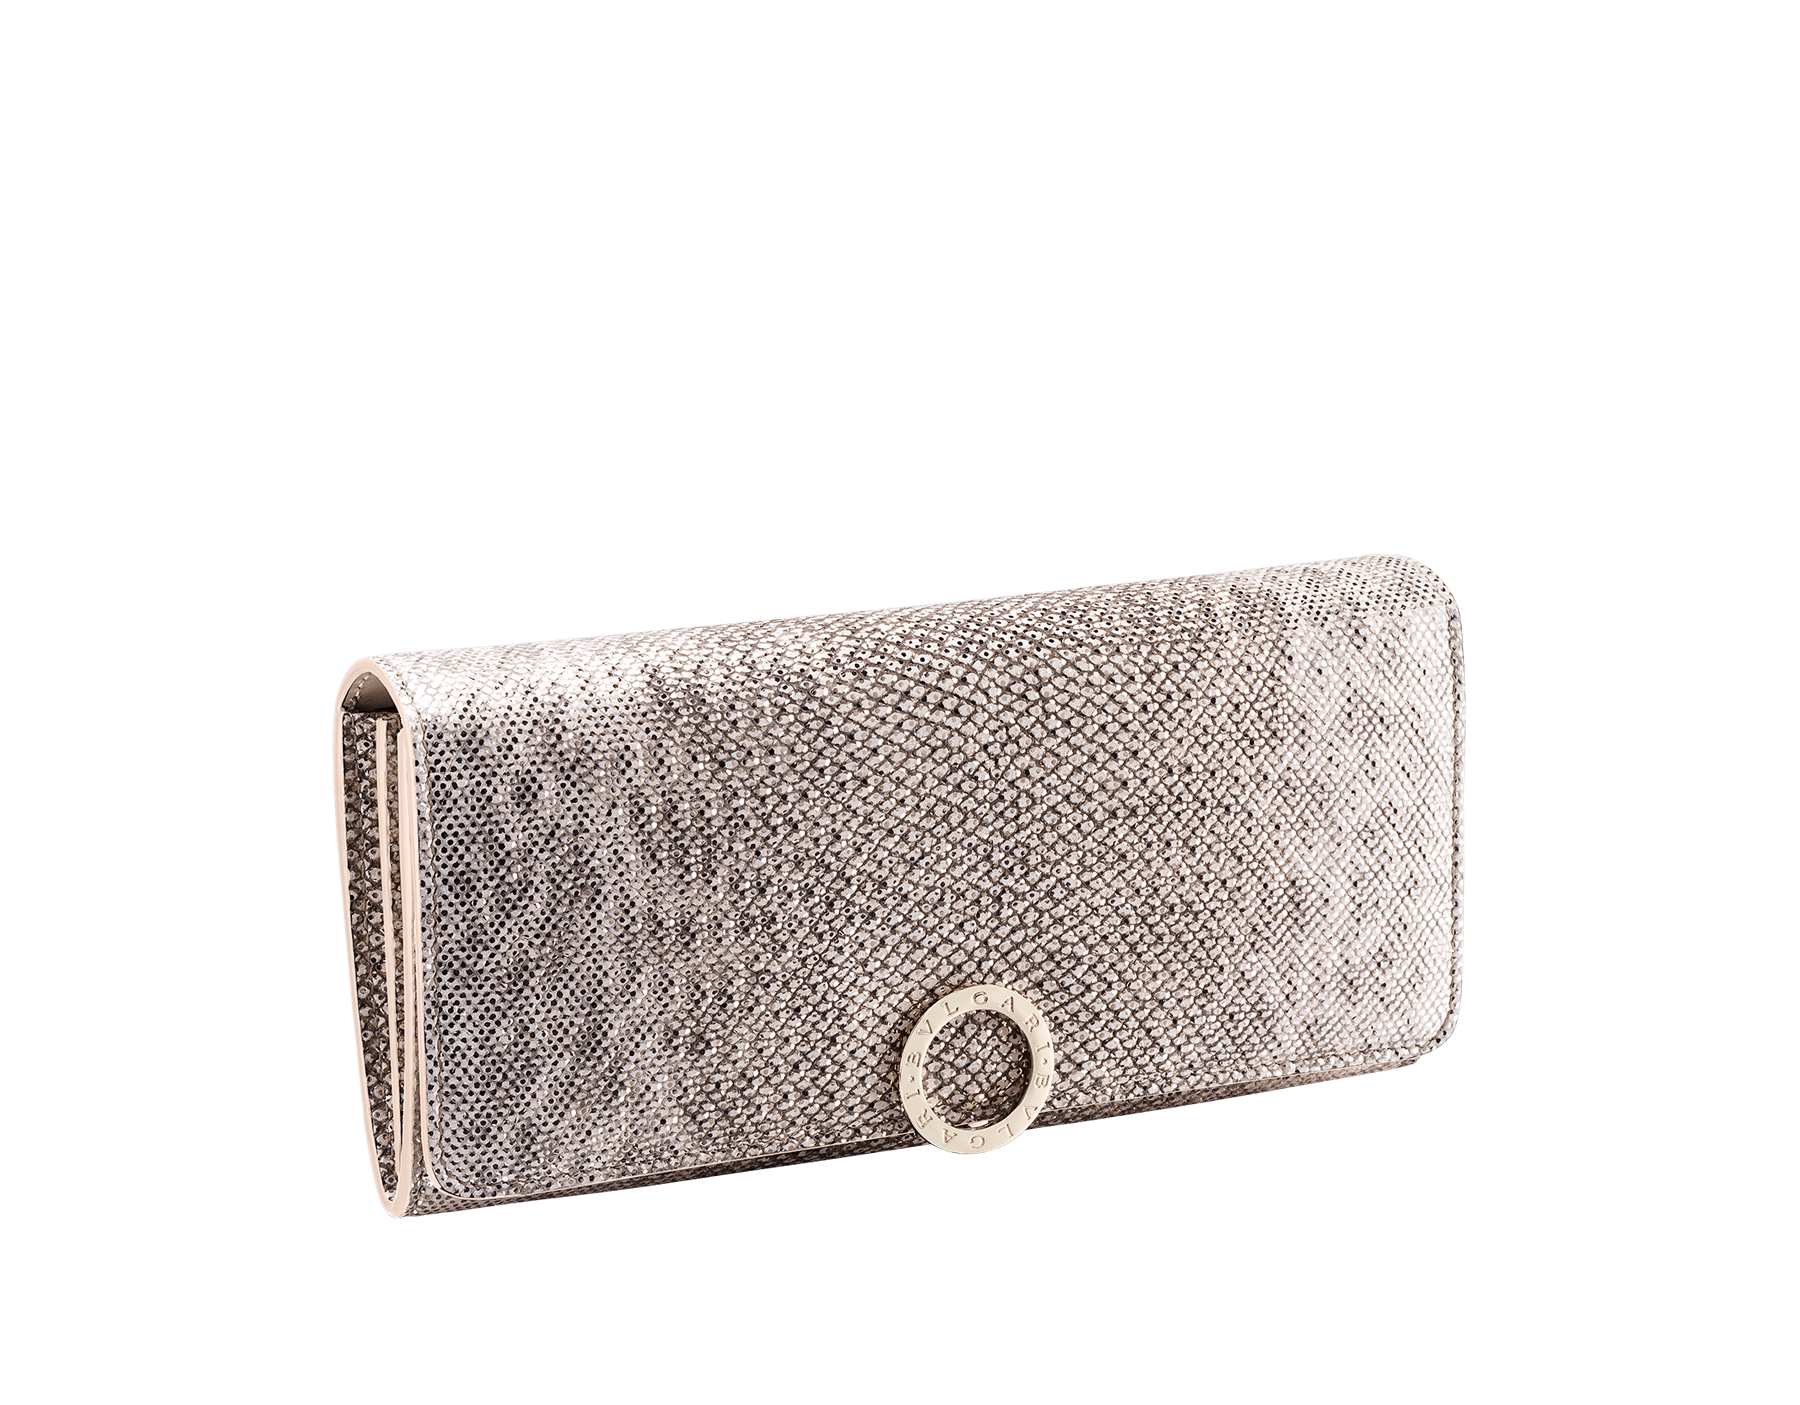 """BVLGARI BVLGARI"" large wallet in metallic Midnight Sapphire blue karung skin and black calfskin. Iconic logo clip closure in light gold plated brass. 579-WLT-SLI-POC-CL-MK image 1"